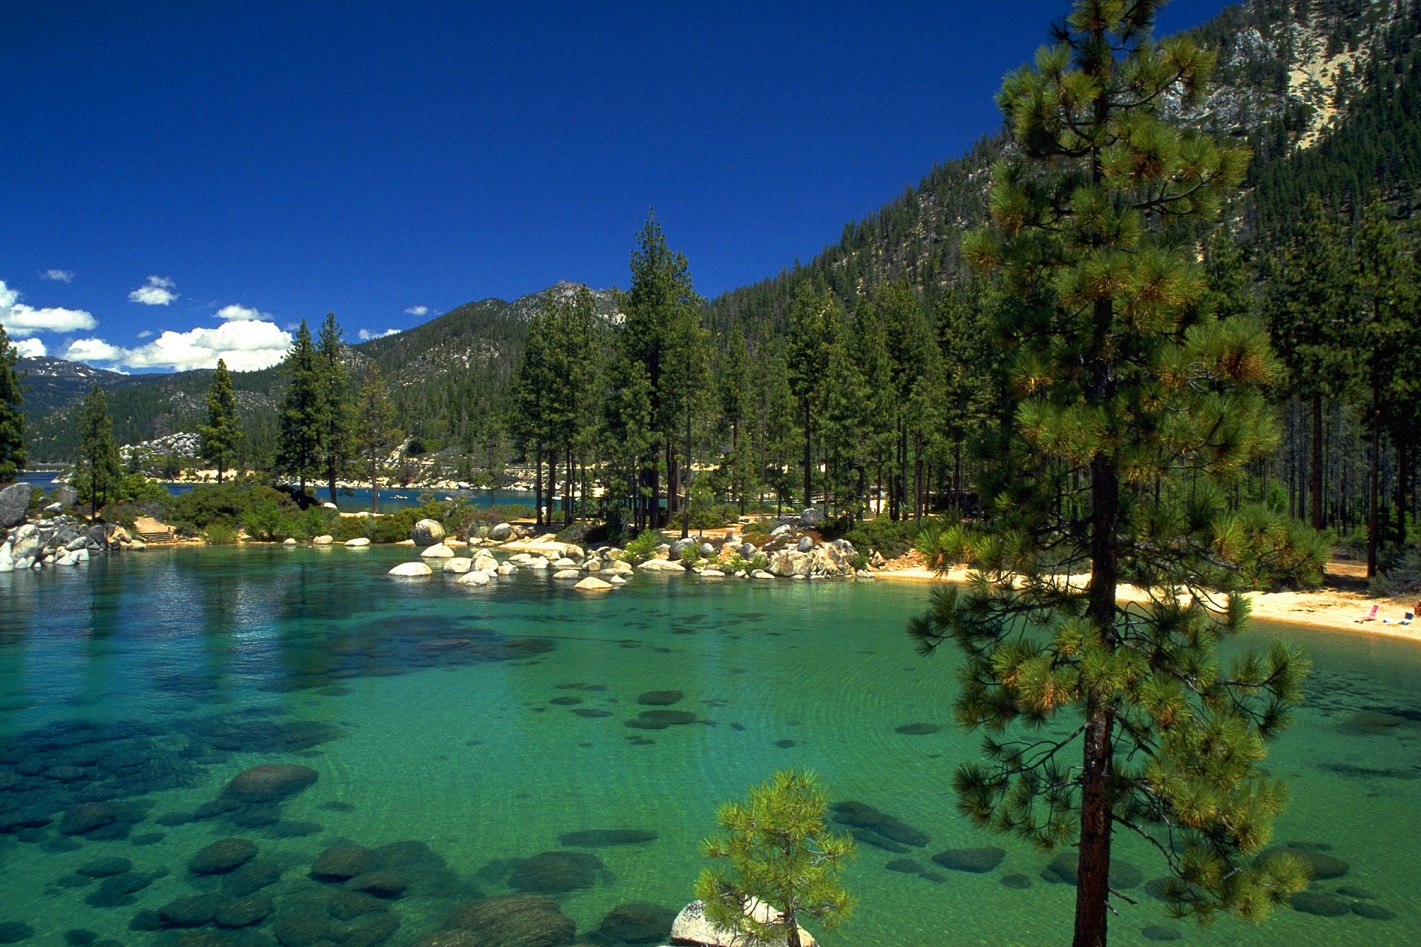 Best Lakes in California: Where Should You Buy Your Vacation Home?